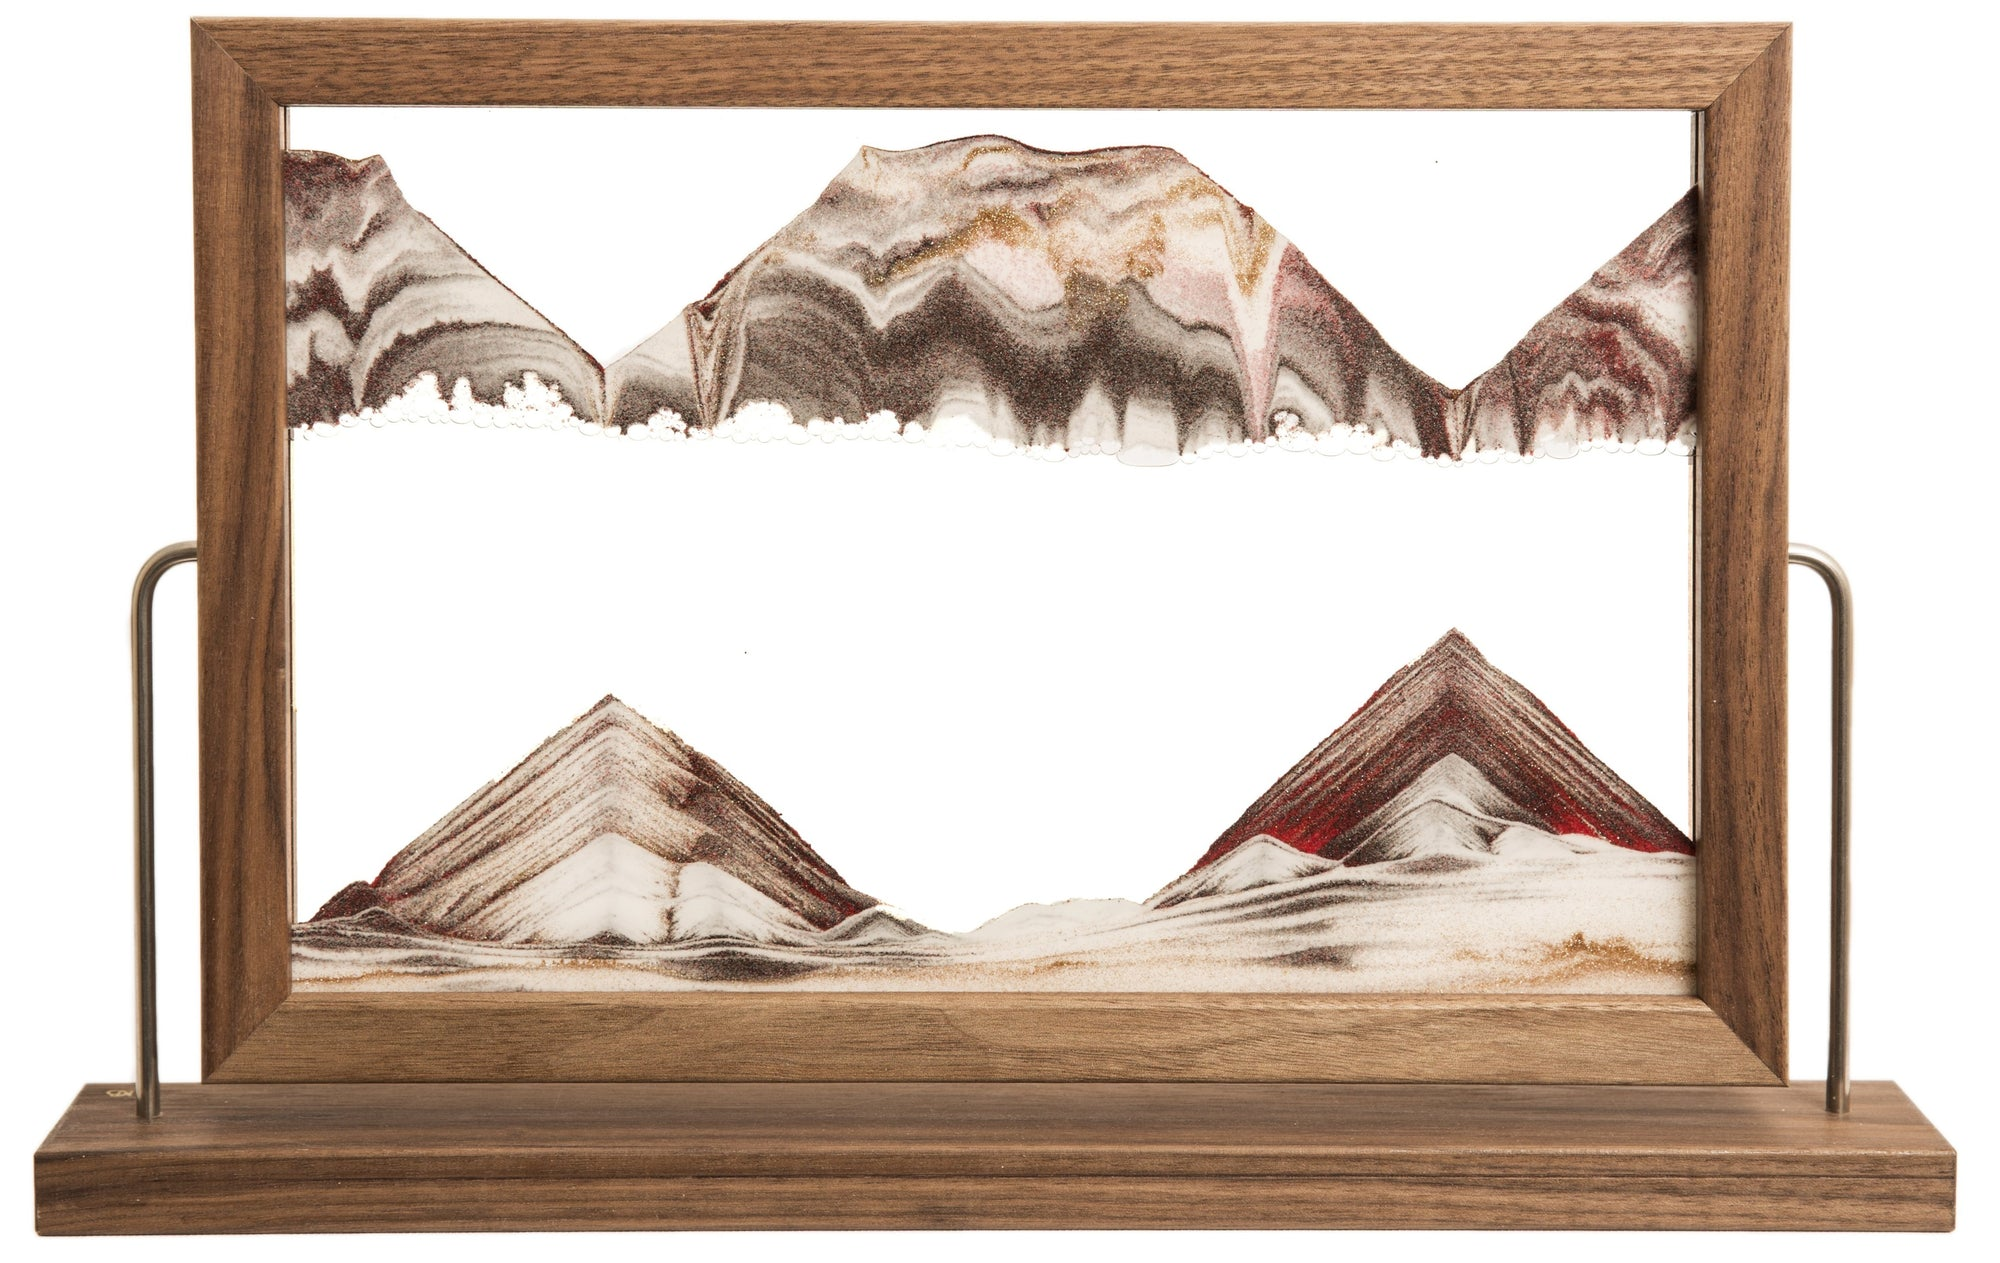 Picture of KB Collection Landscape Walnut Sand Art - By Klaus Bosch sold by MovingSandArt.com